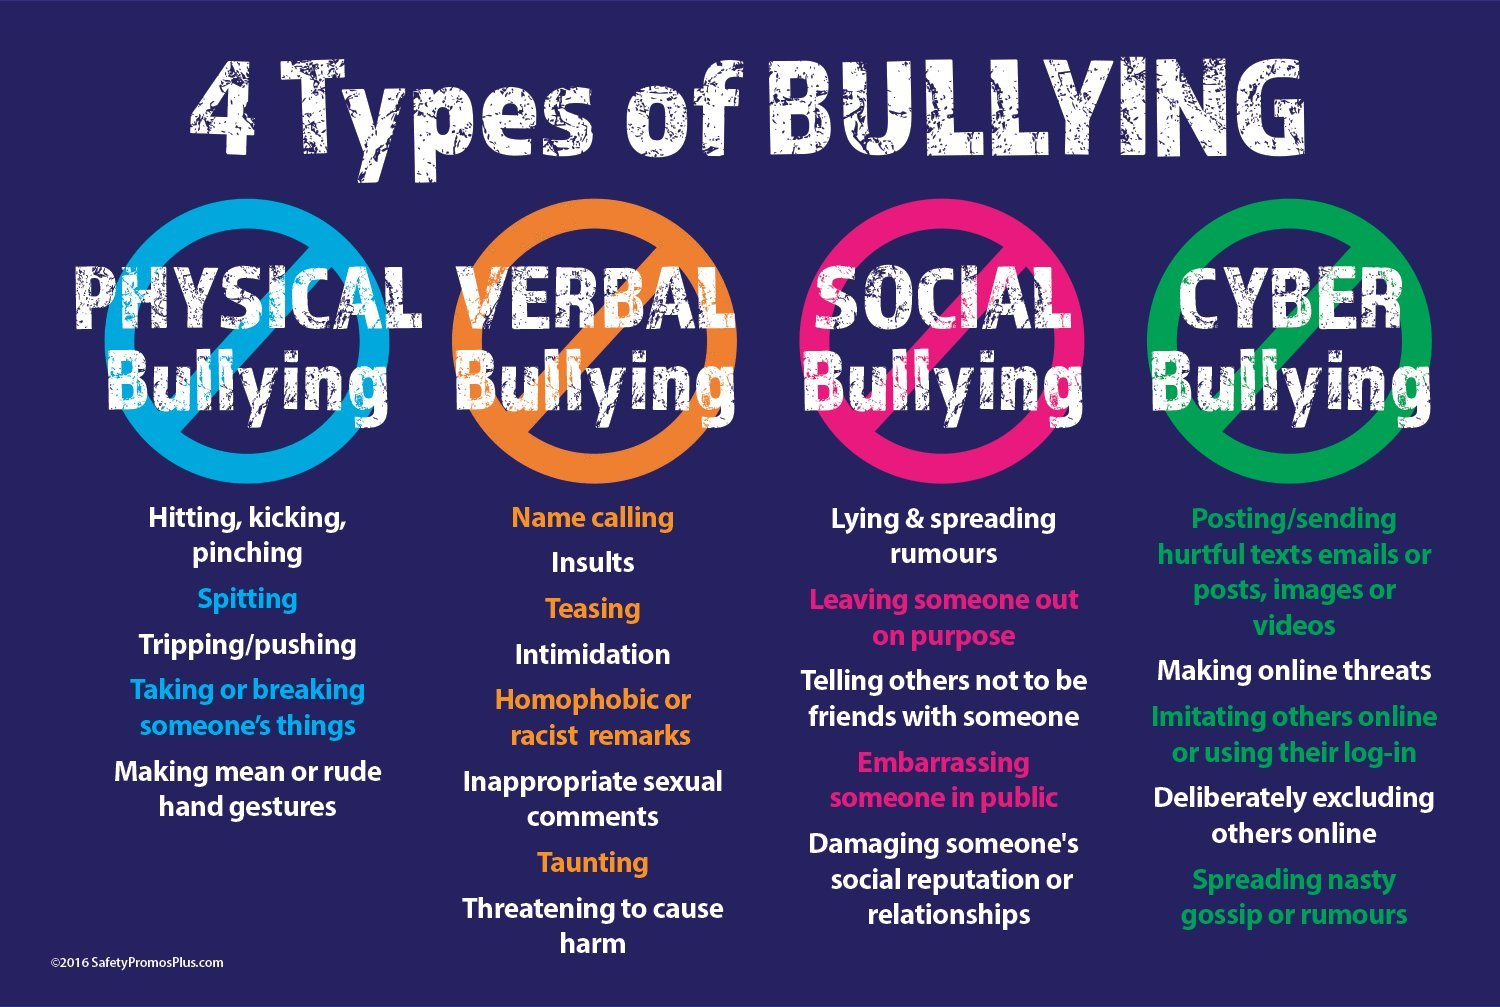 the issue of bullying in our society Bullying can contribute to students feeling socially isolated, worthless or depressed in addition, the psychological effects of bullying can last well into adulthood and increase a person's chance of experiencing things like anxiety disorders.